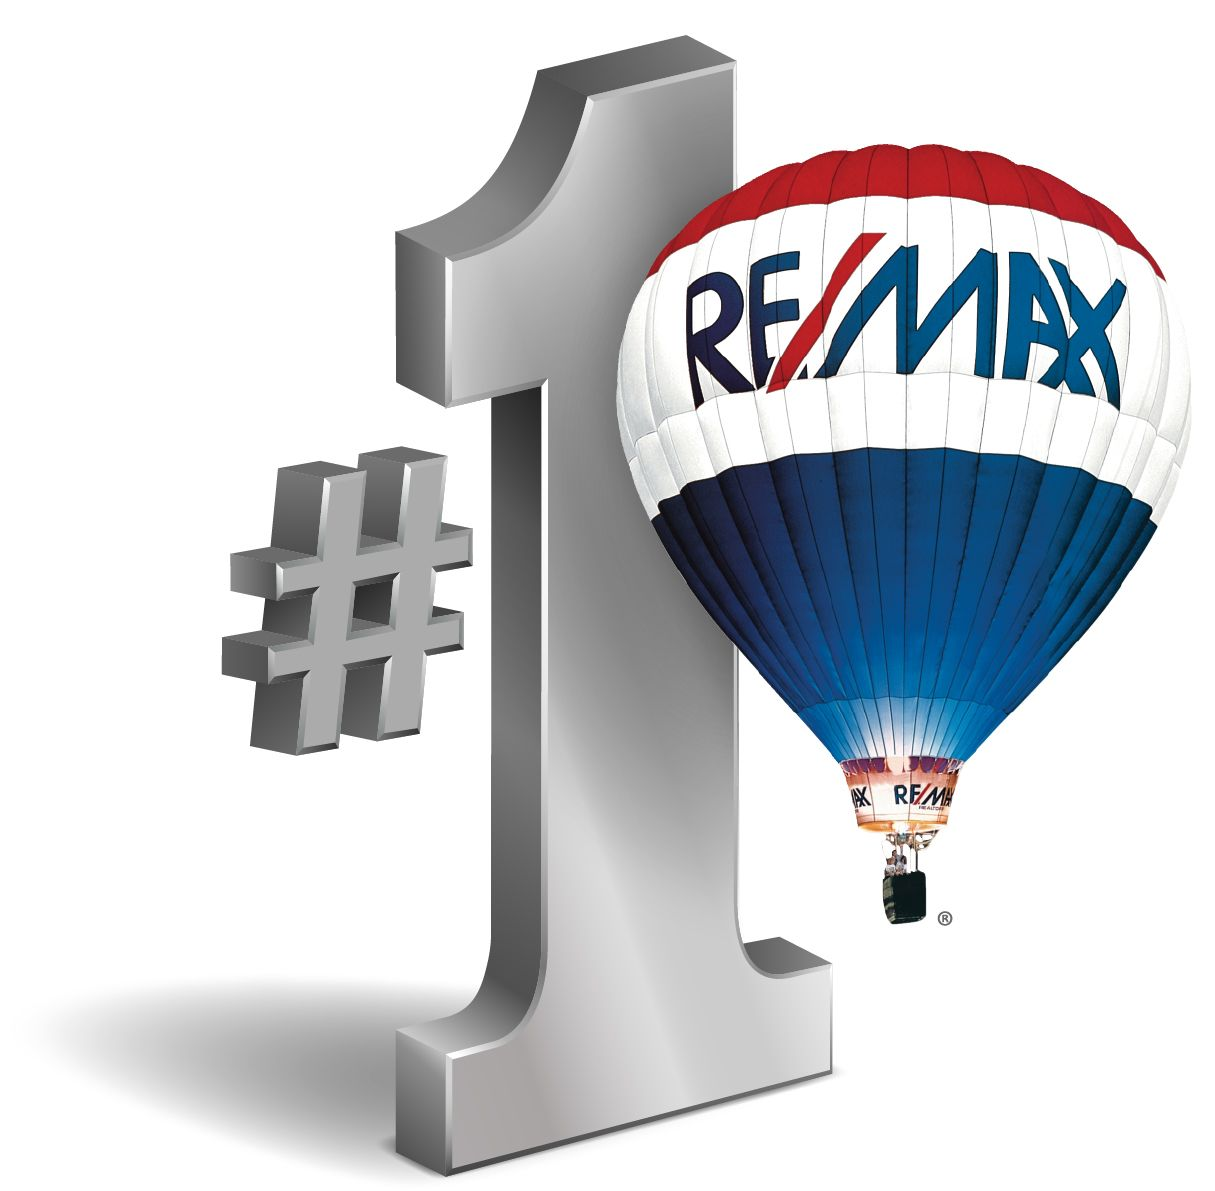 #1 Remax balloon(auto-resized from 1215x1191)